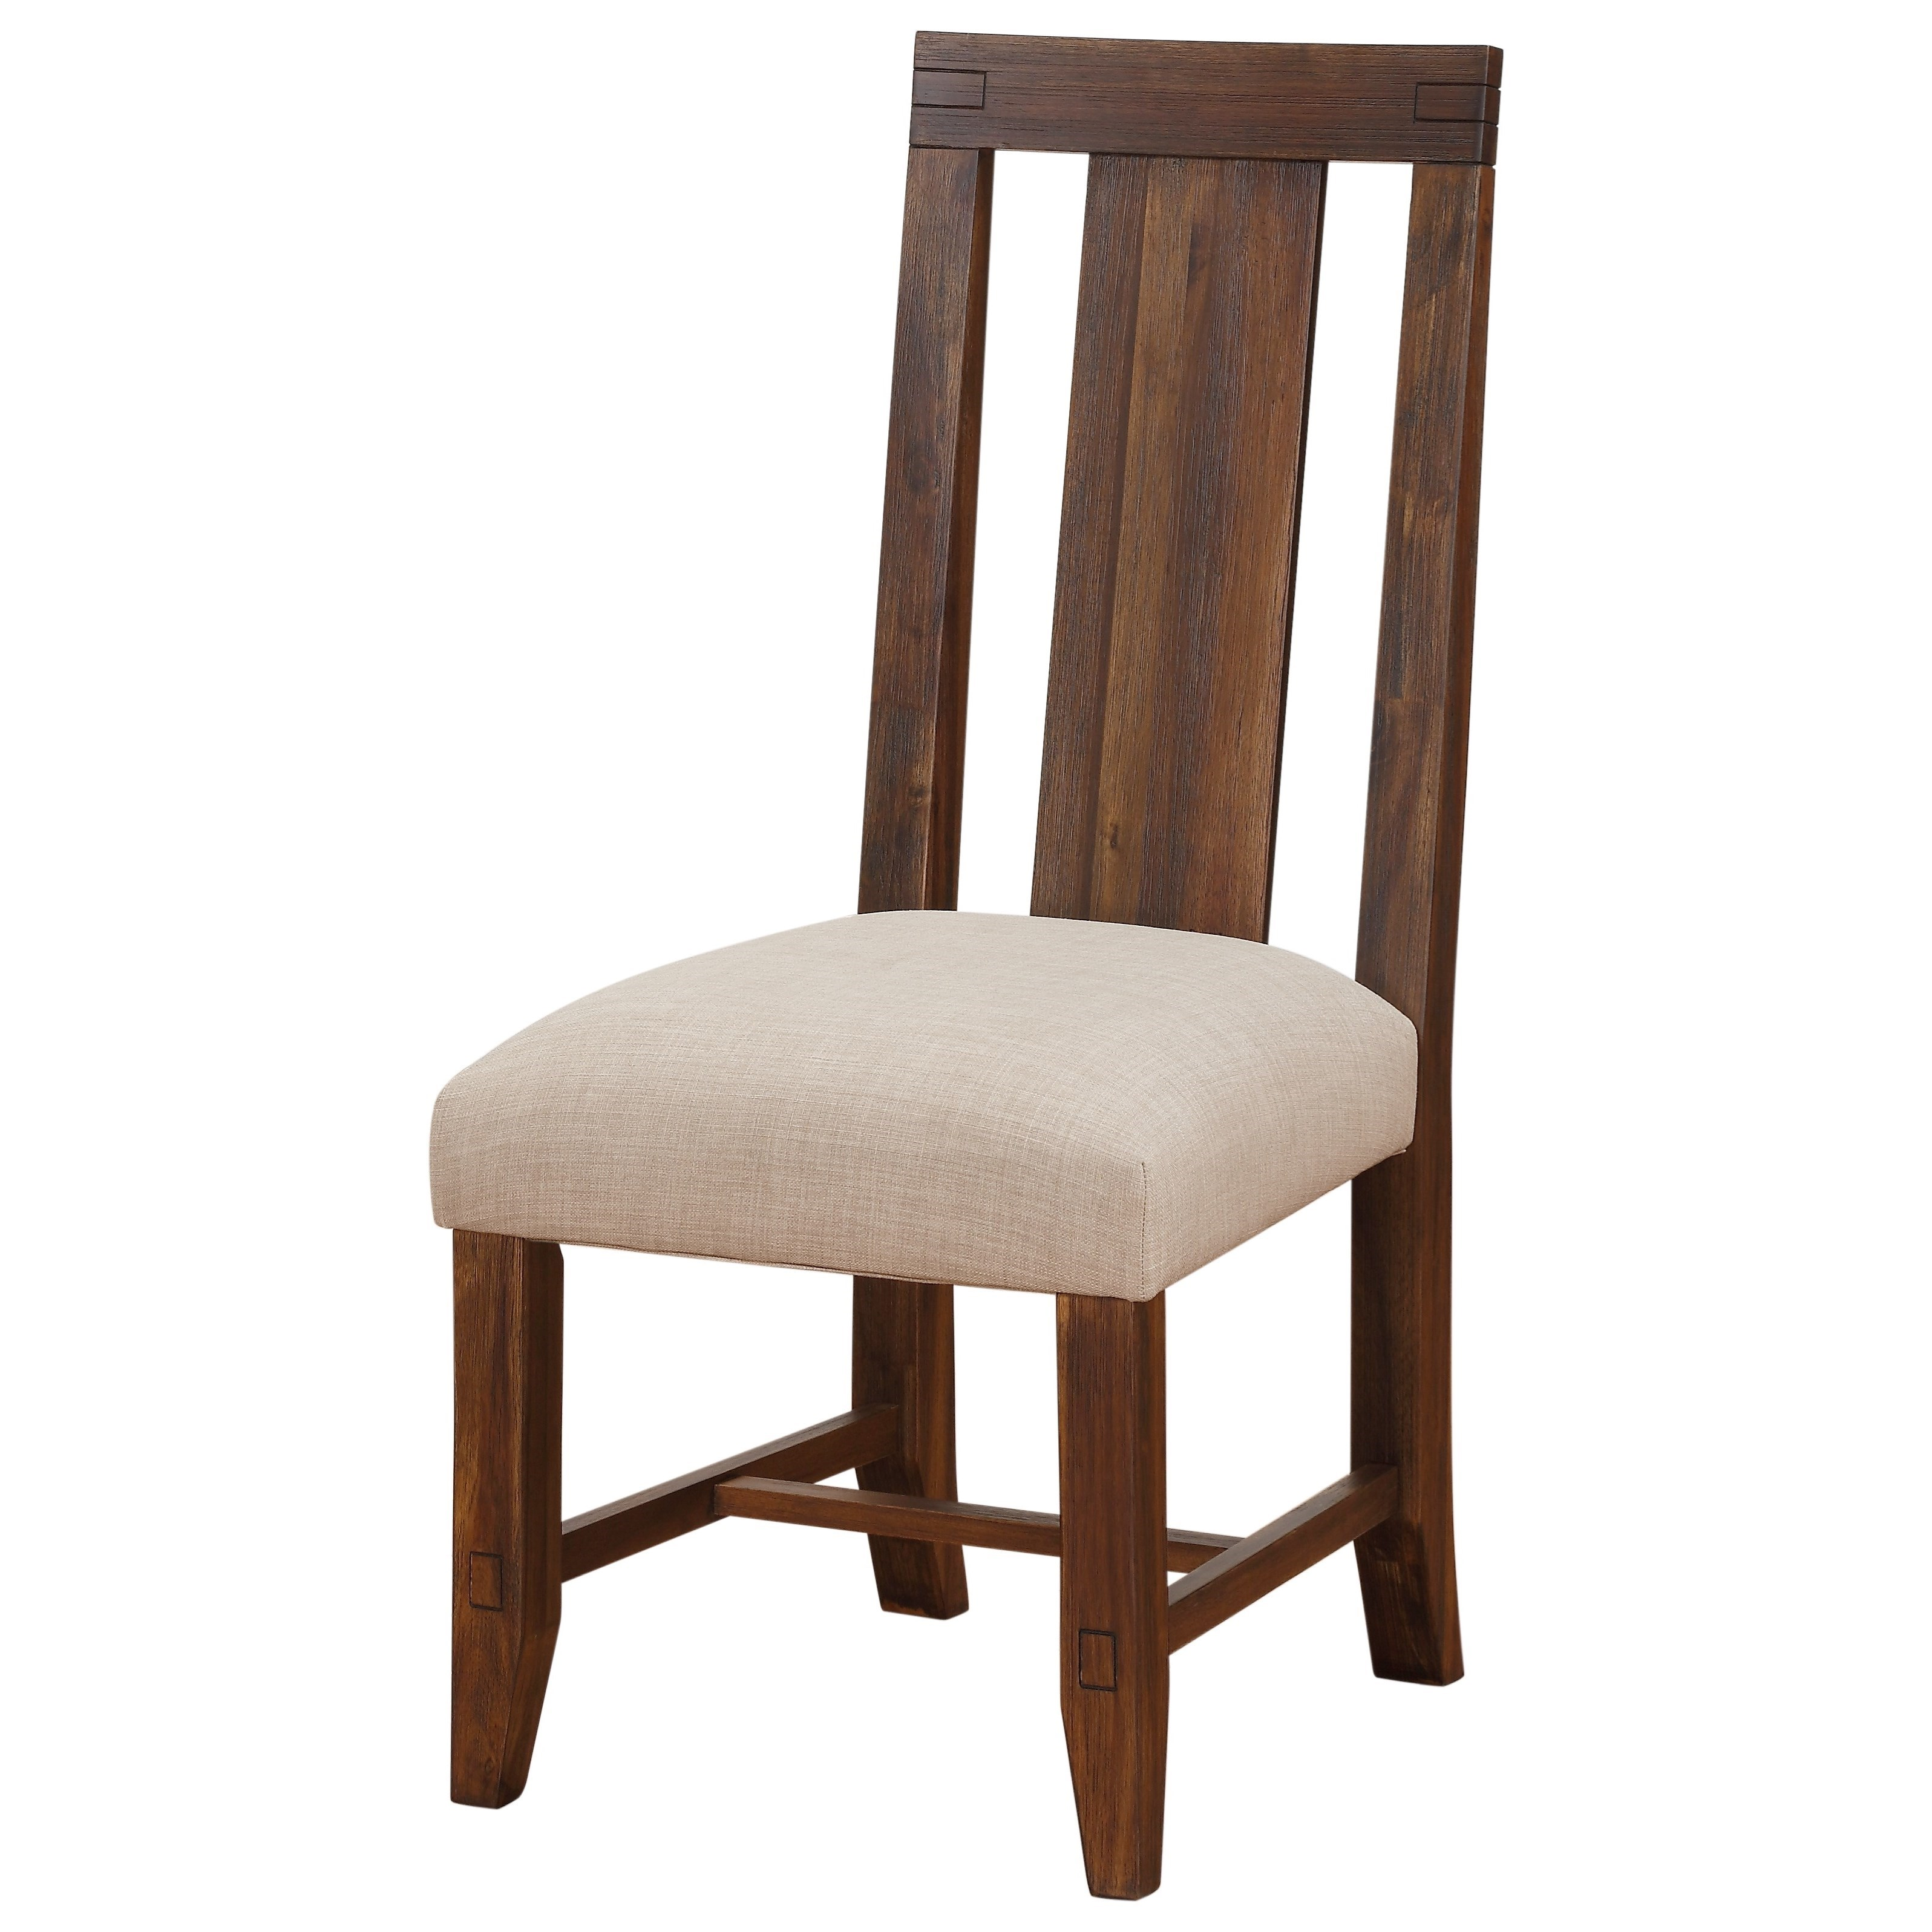 Modus International Meadow Dining Side Chair - Item Number: 3F4166P